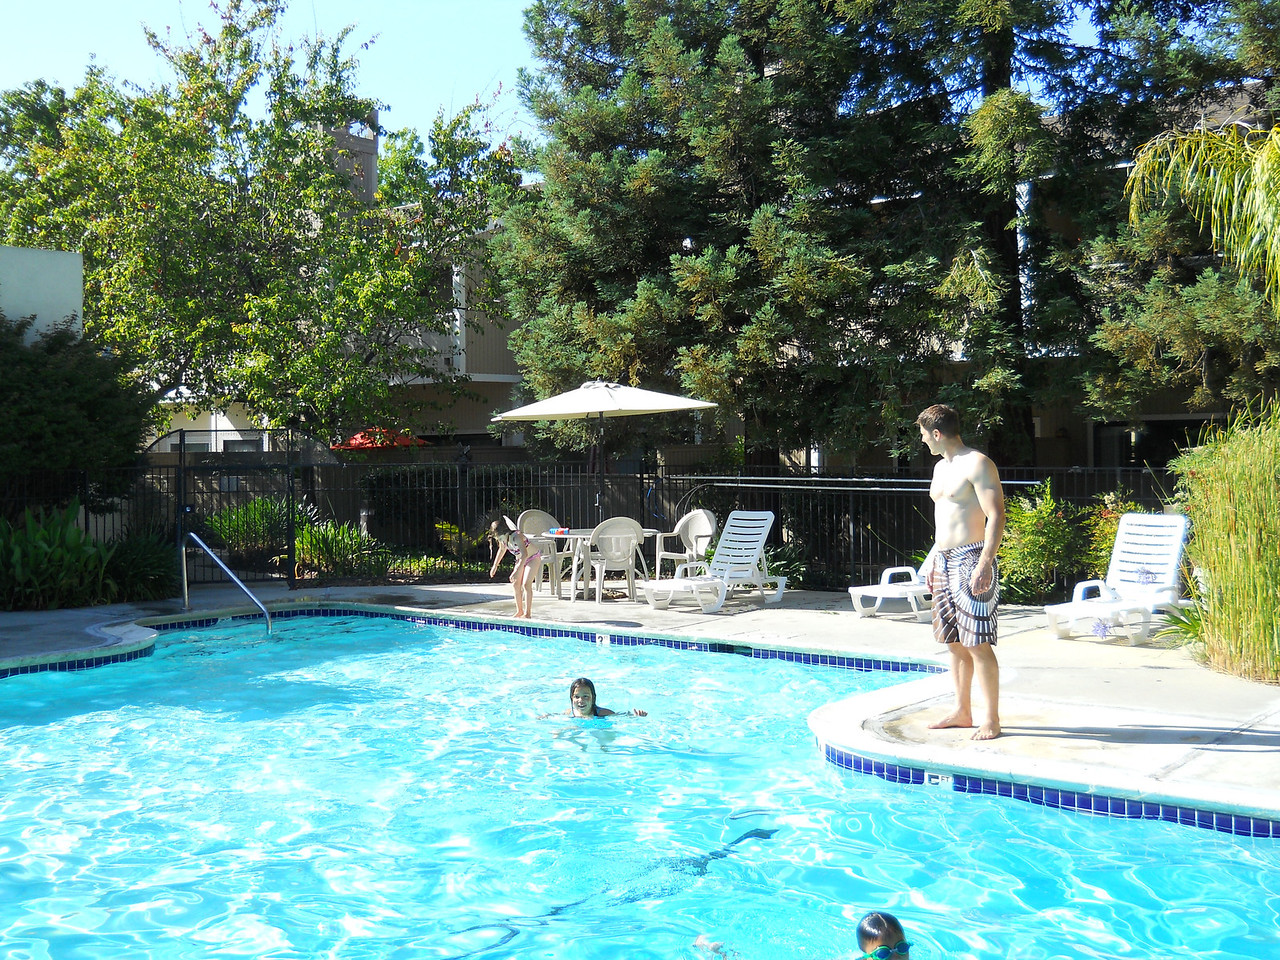 Mike, Kaidyn (in water) and Anna.  Mike took the girls to the pool, while Ilsa and I went with Leonie to pick up her dress